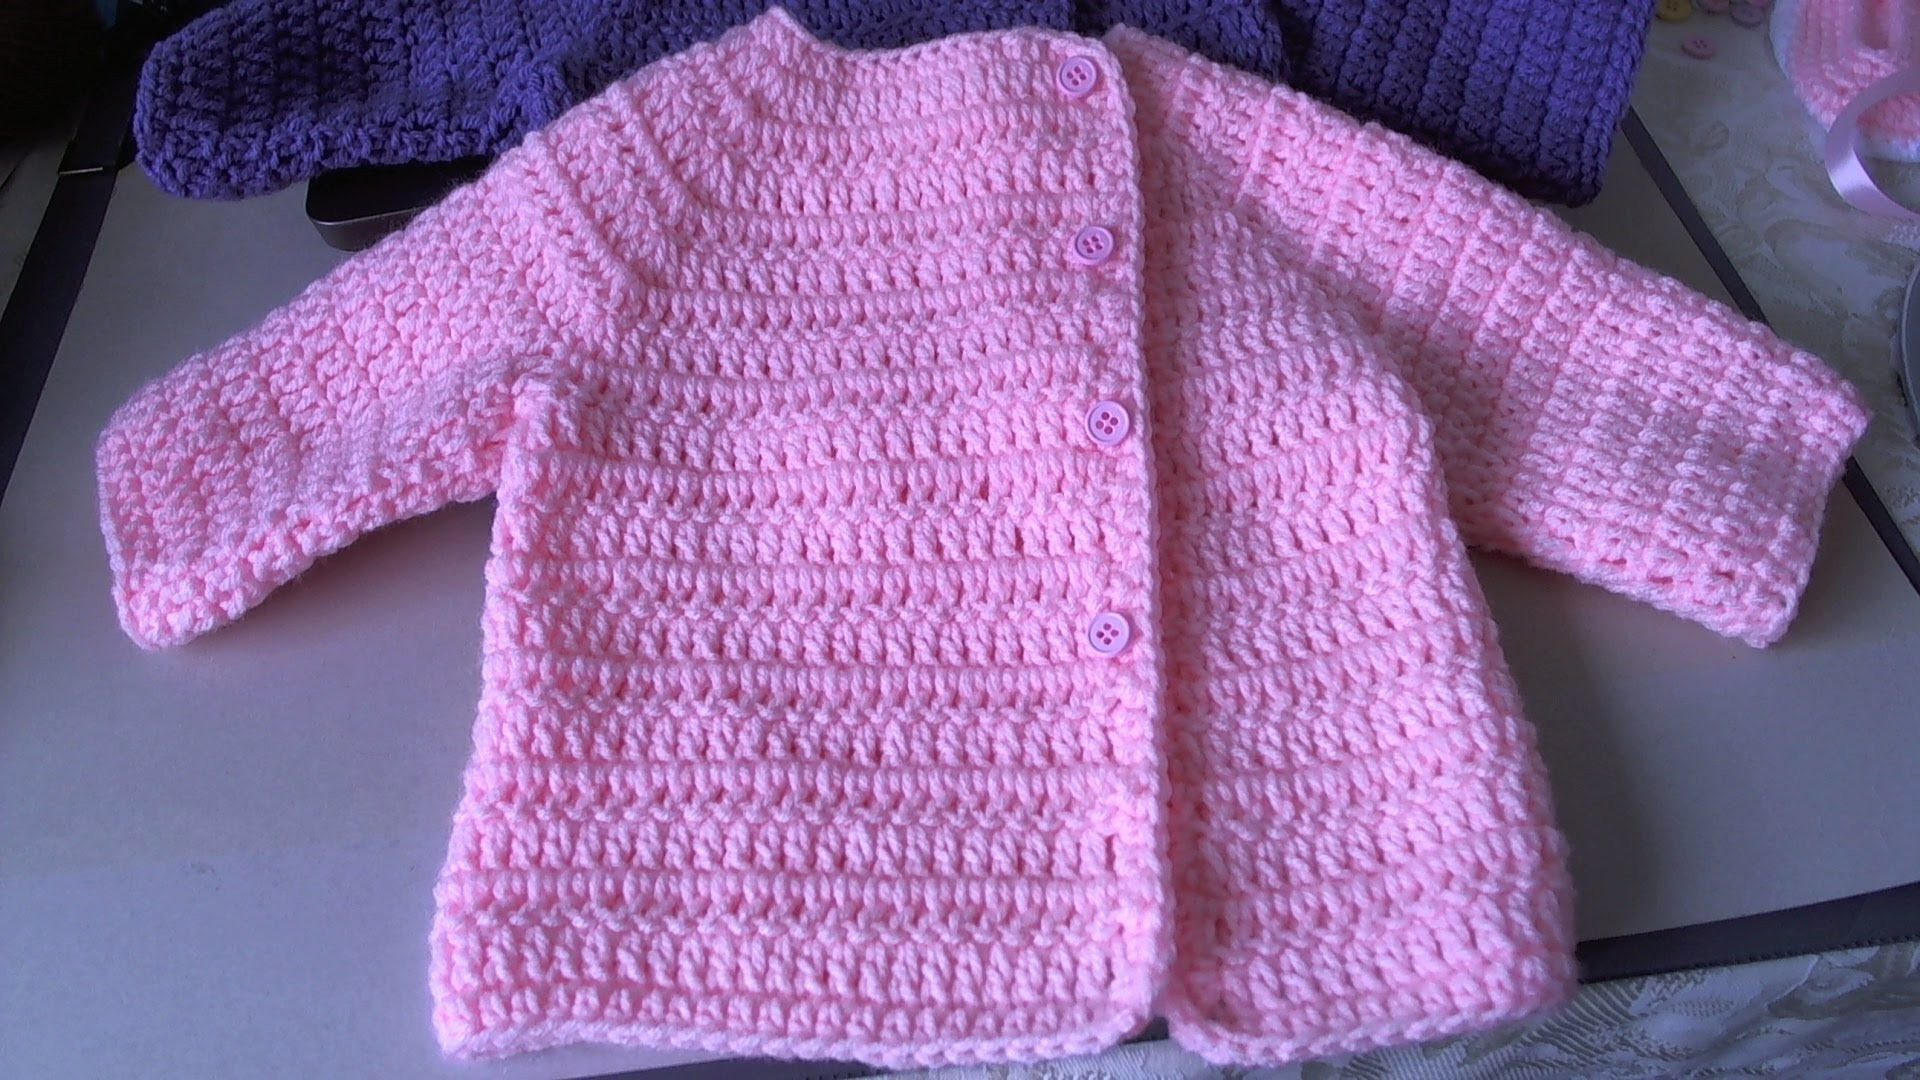 Easy Crochet Baby Sweater - Asian inspired sweater. tambien en Espanol, Suete de bebe